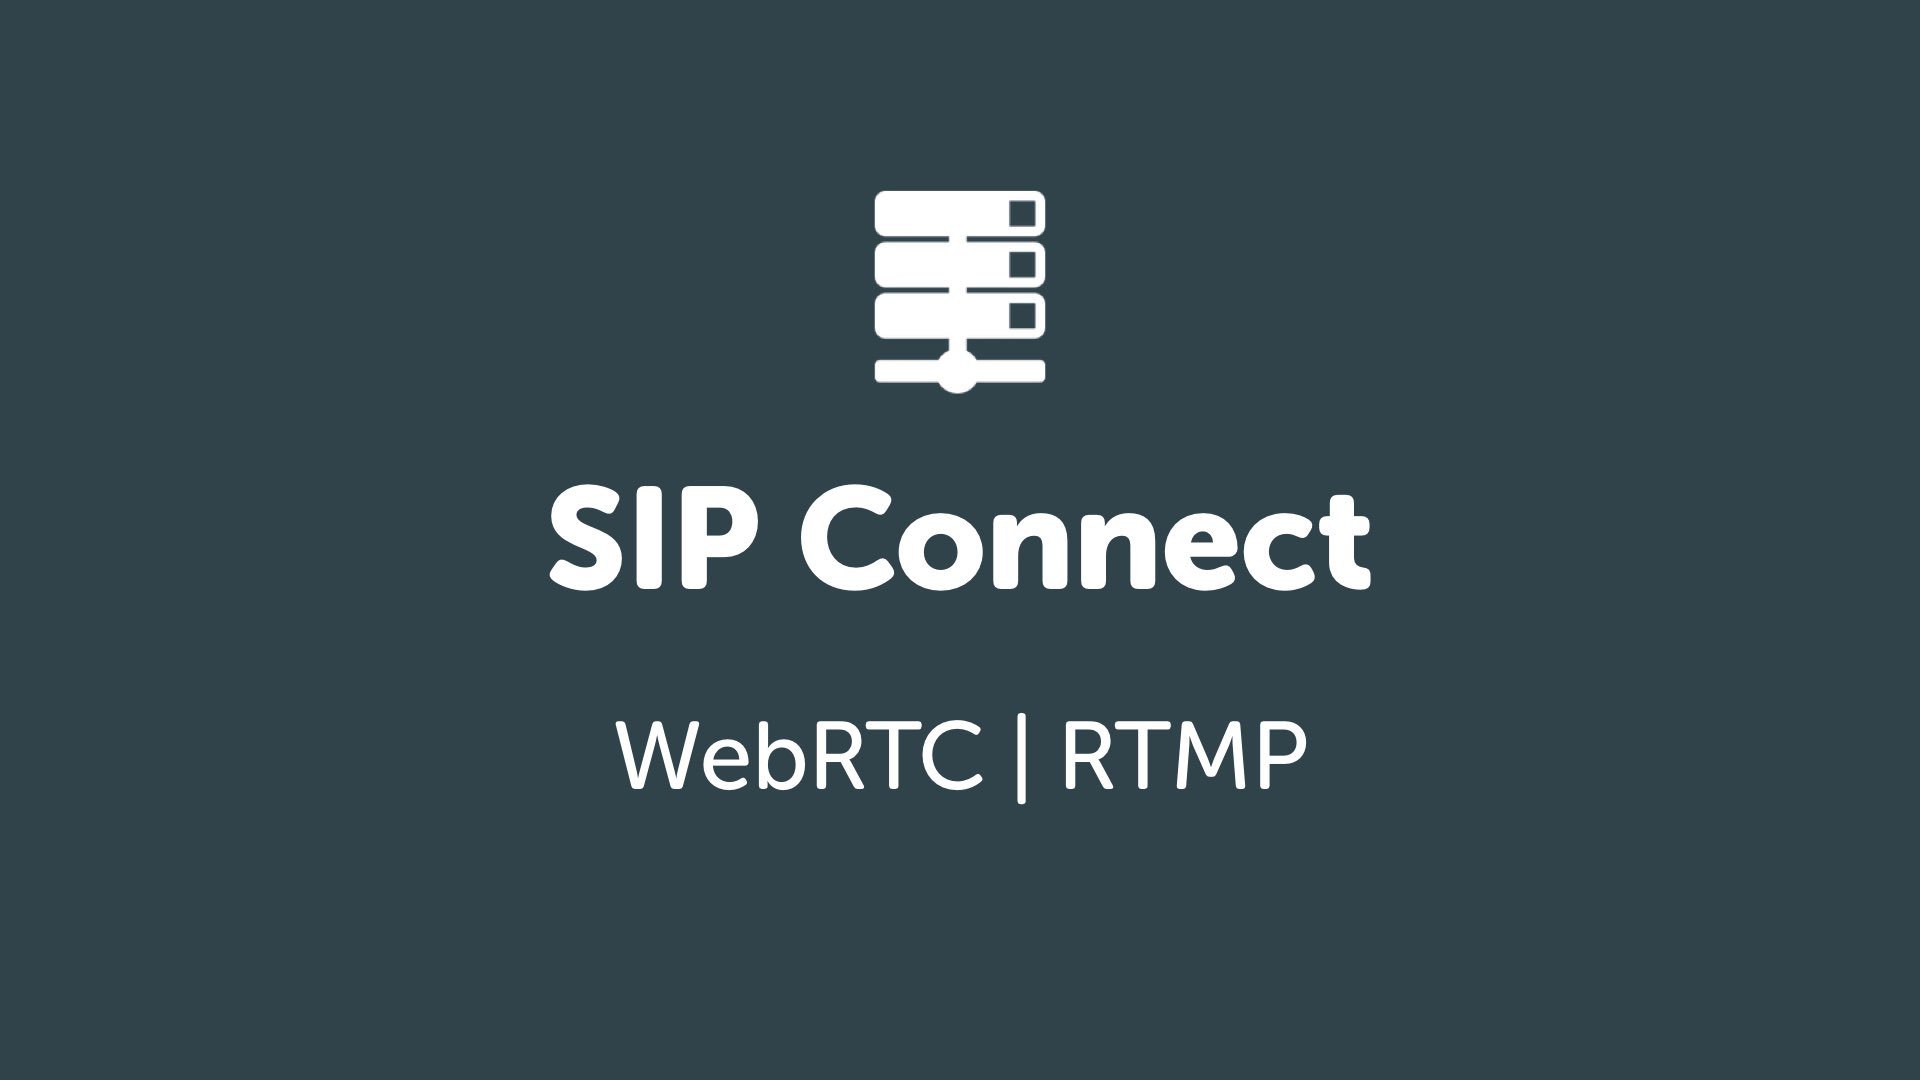 Video RTC · SIP Connect · Blog